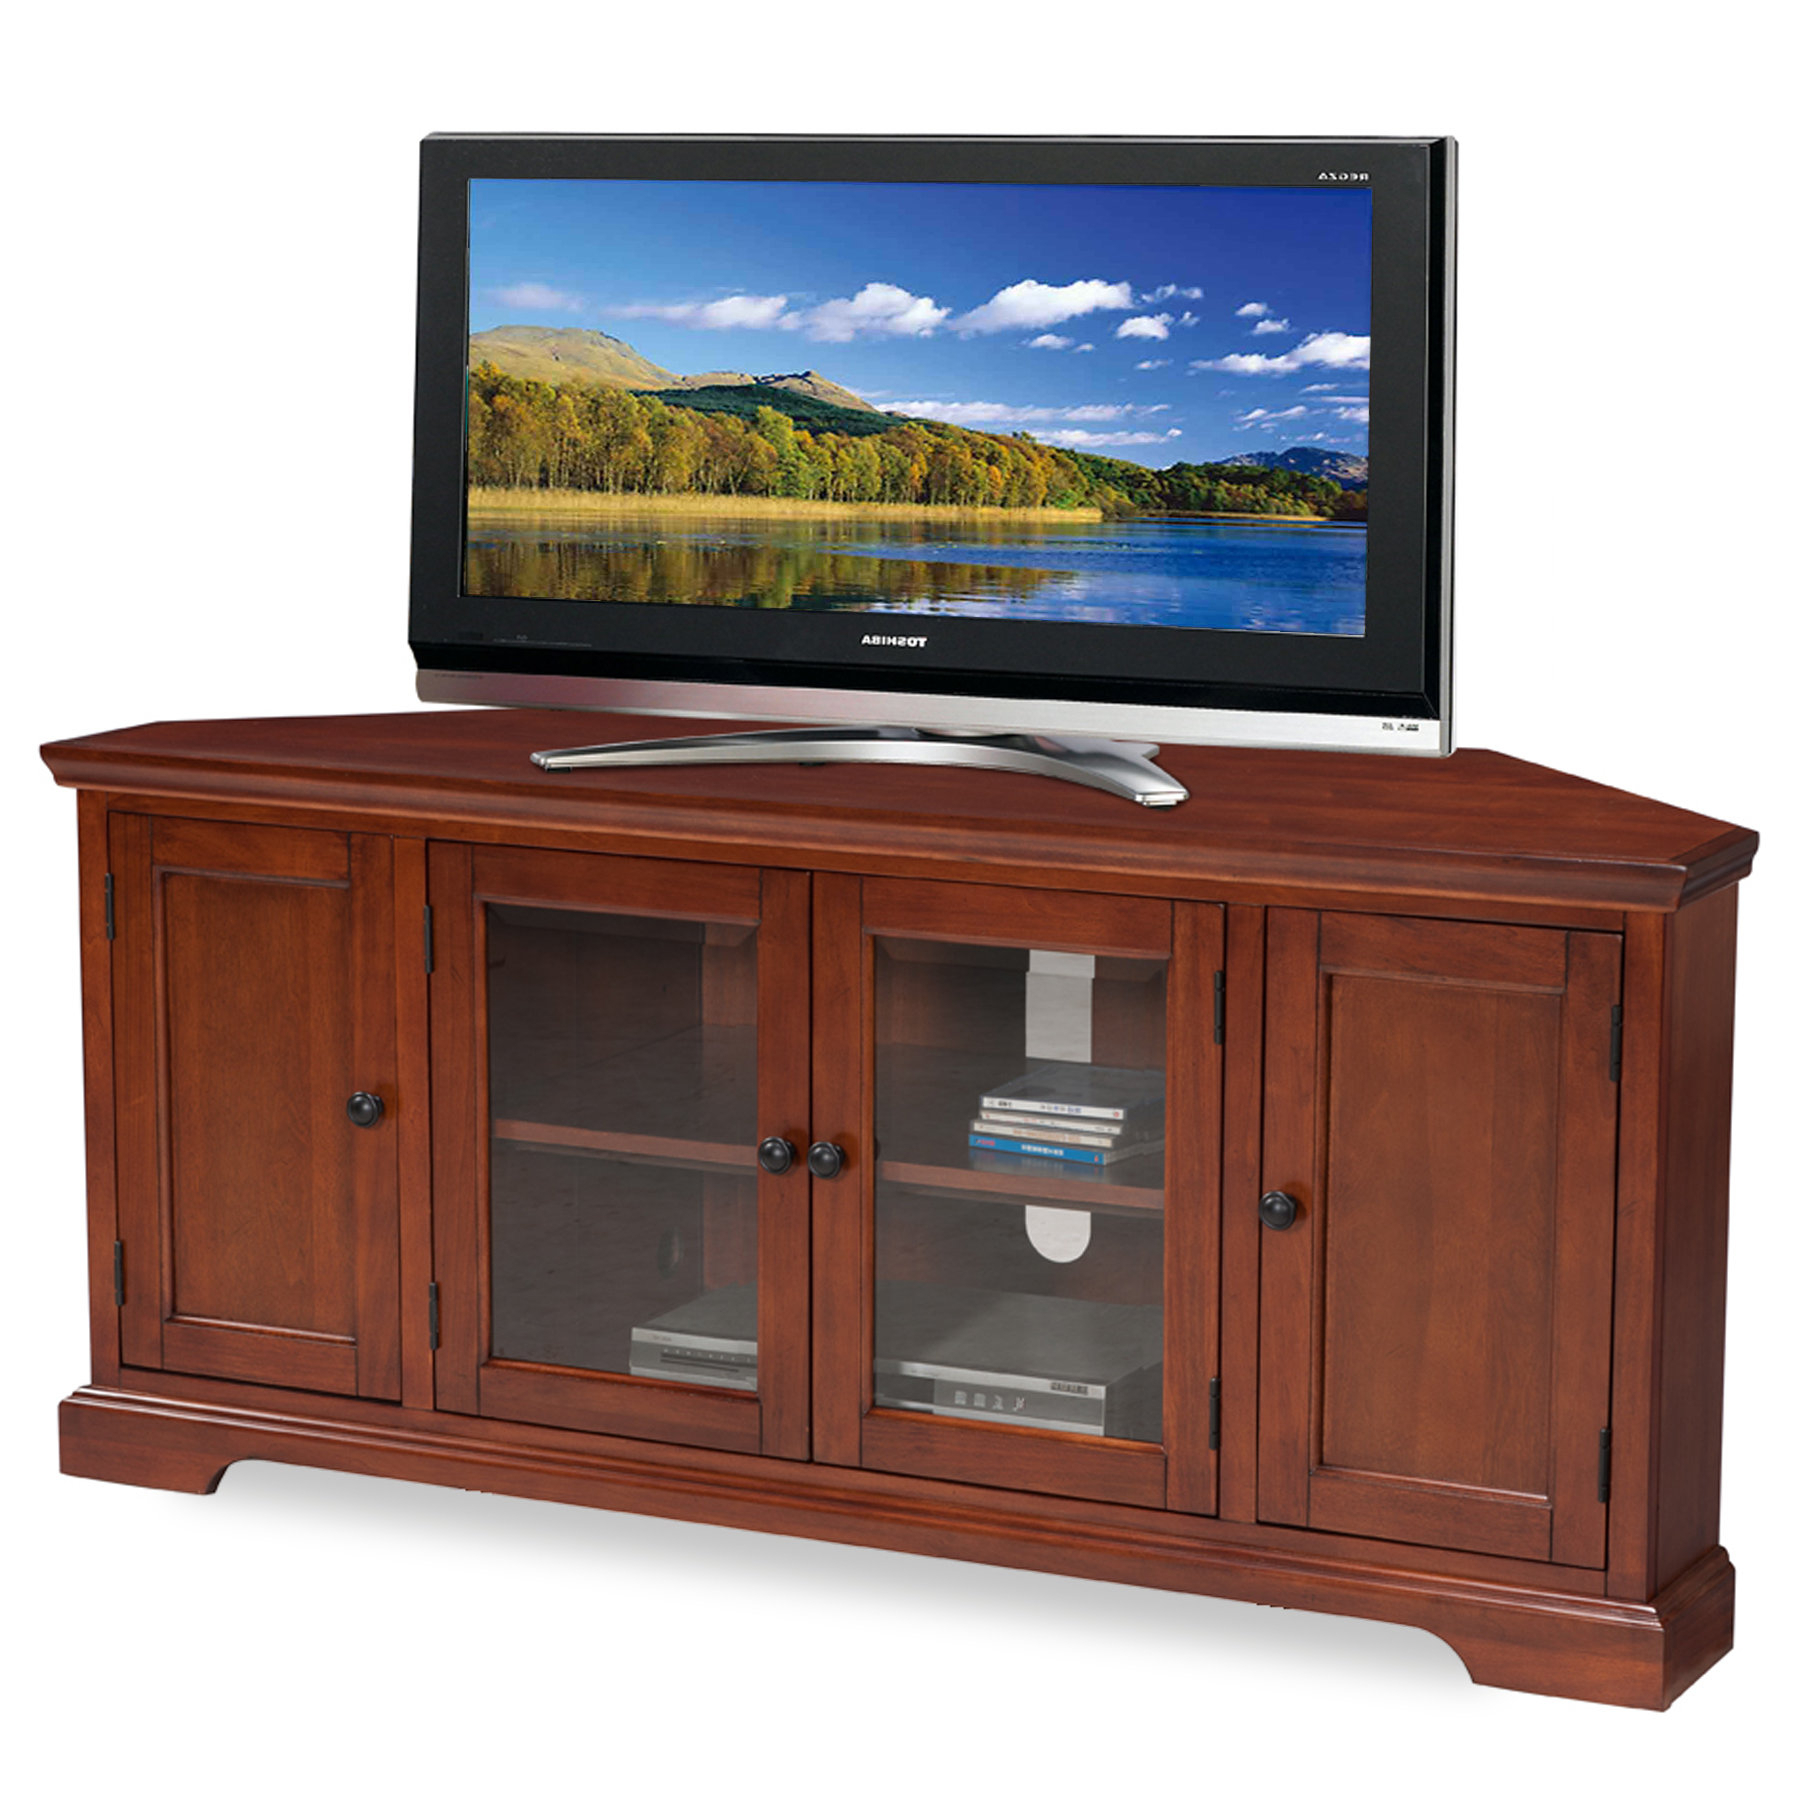 Black Corner Tv Stands For Tvs Up To 60 Pertaining To Current Corner Tv Stands You'll Love (View 6 of 20)